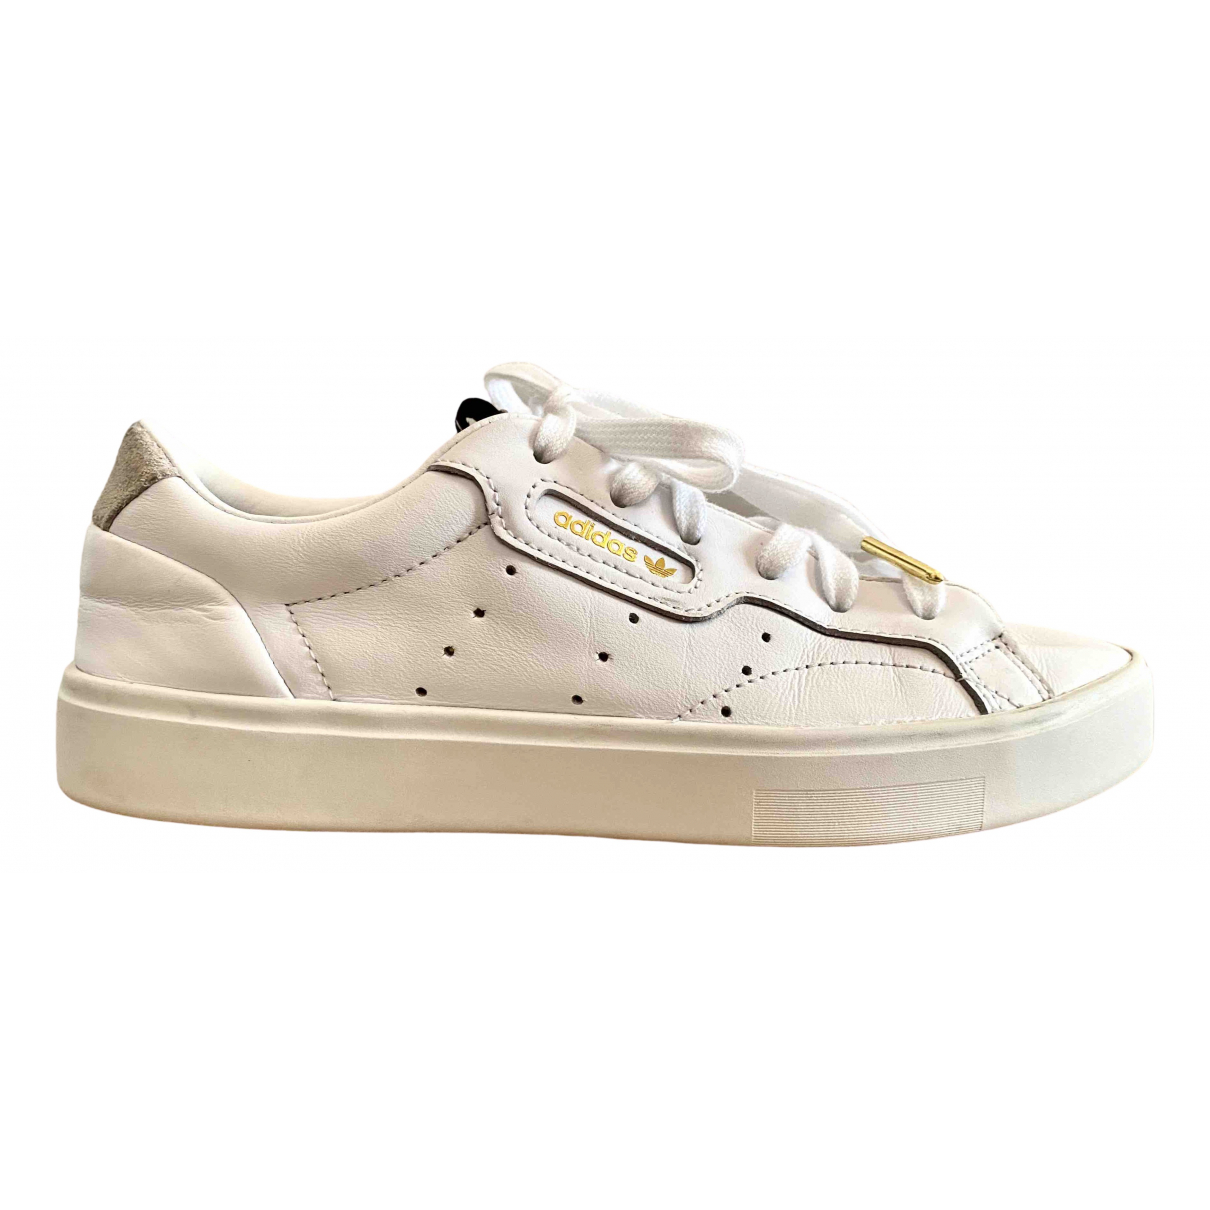 Adidas \N White Leather Trainers for Women 38 EU